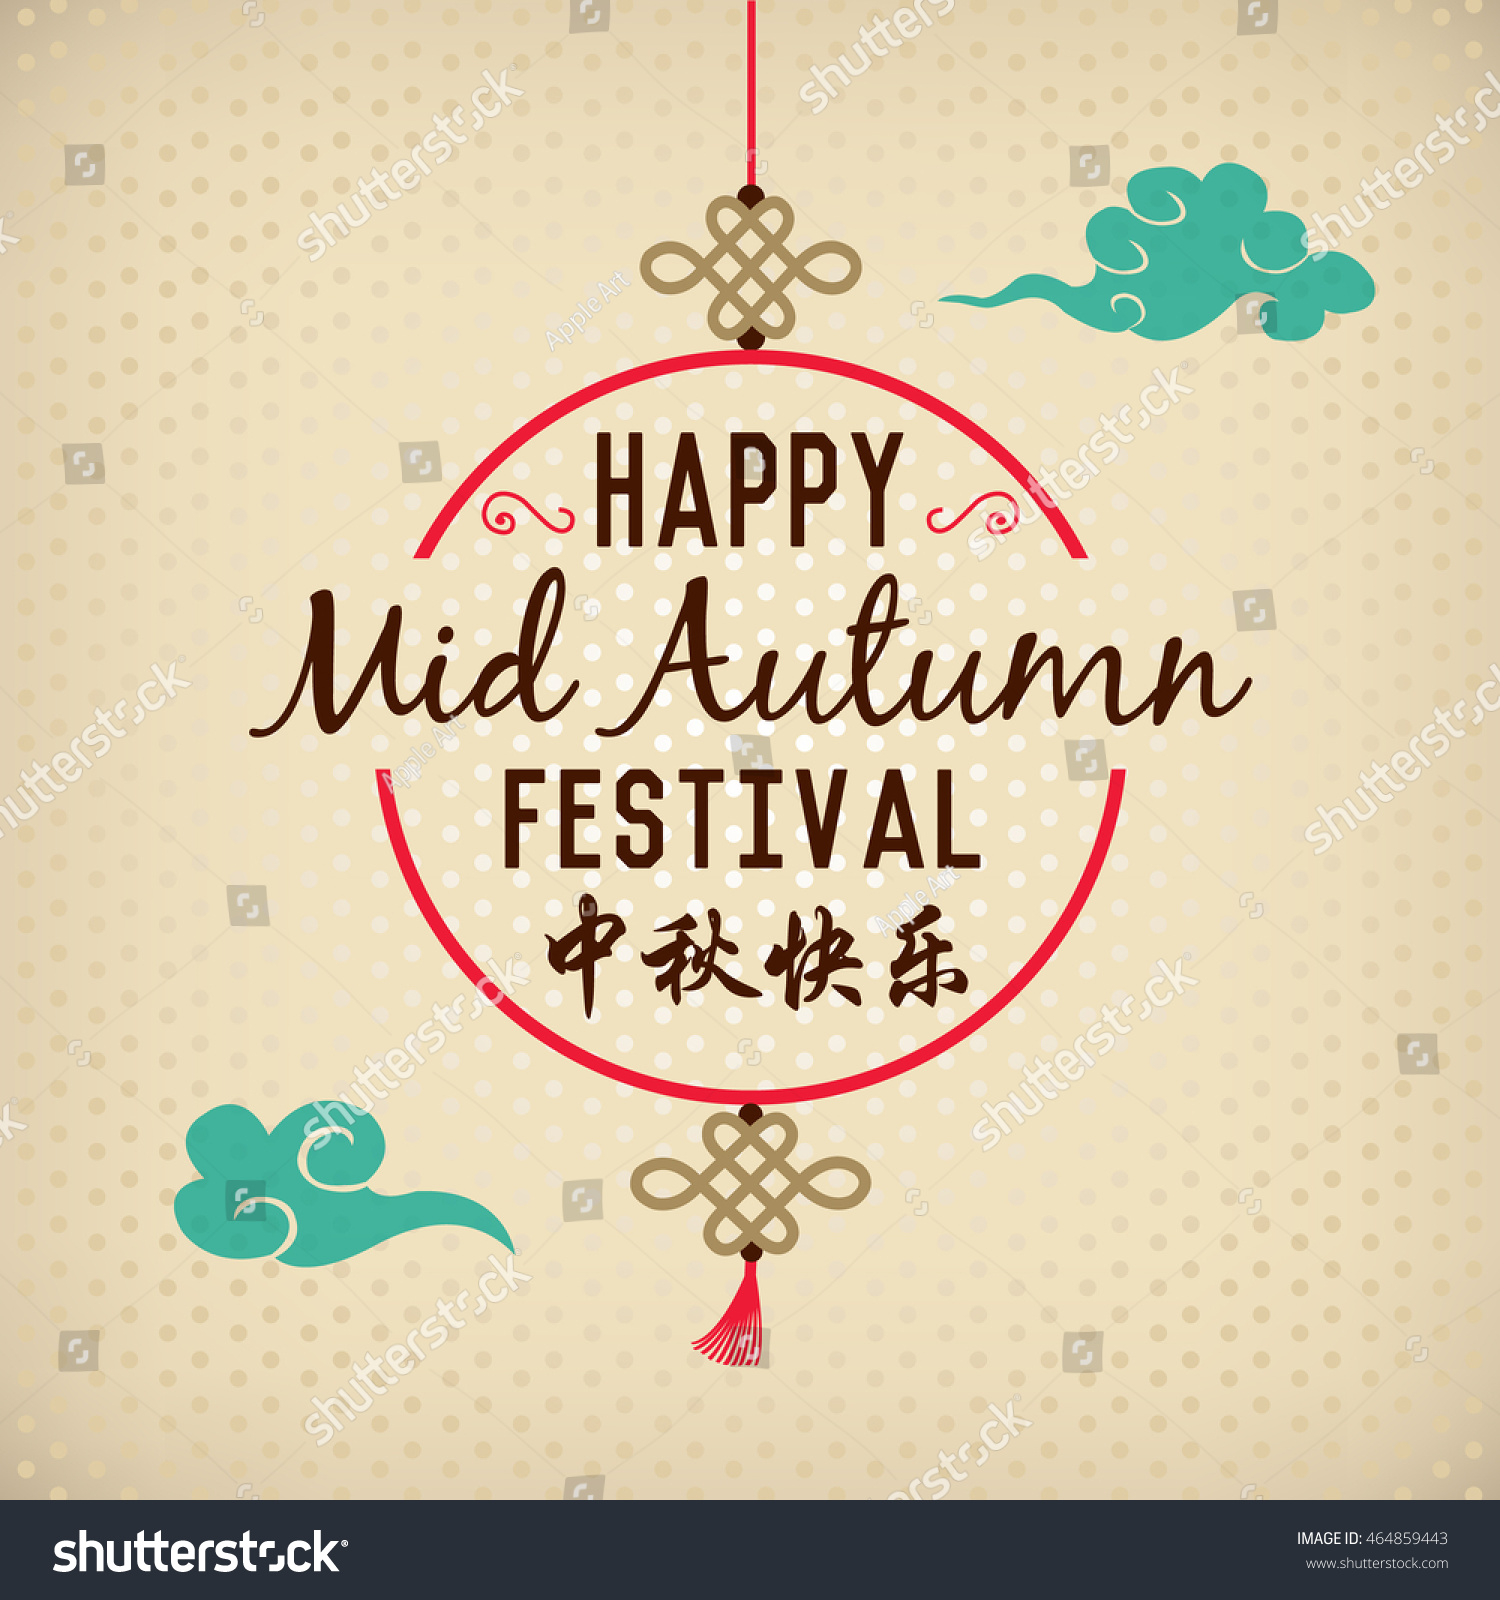 Happy mid autumn festival greeting chinese stock vector royalty happy mid autumn festival greeting chinese translation mid autumn festival m4hsunfo